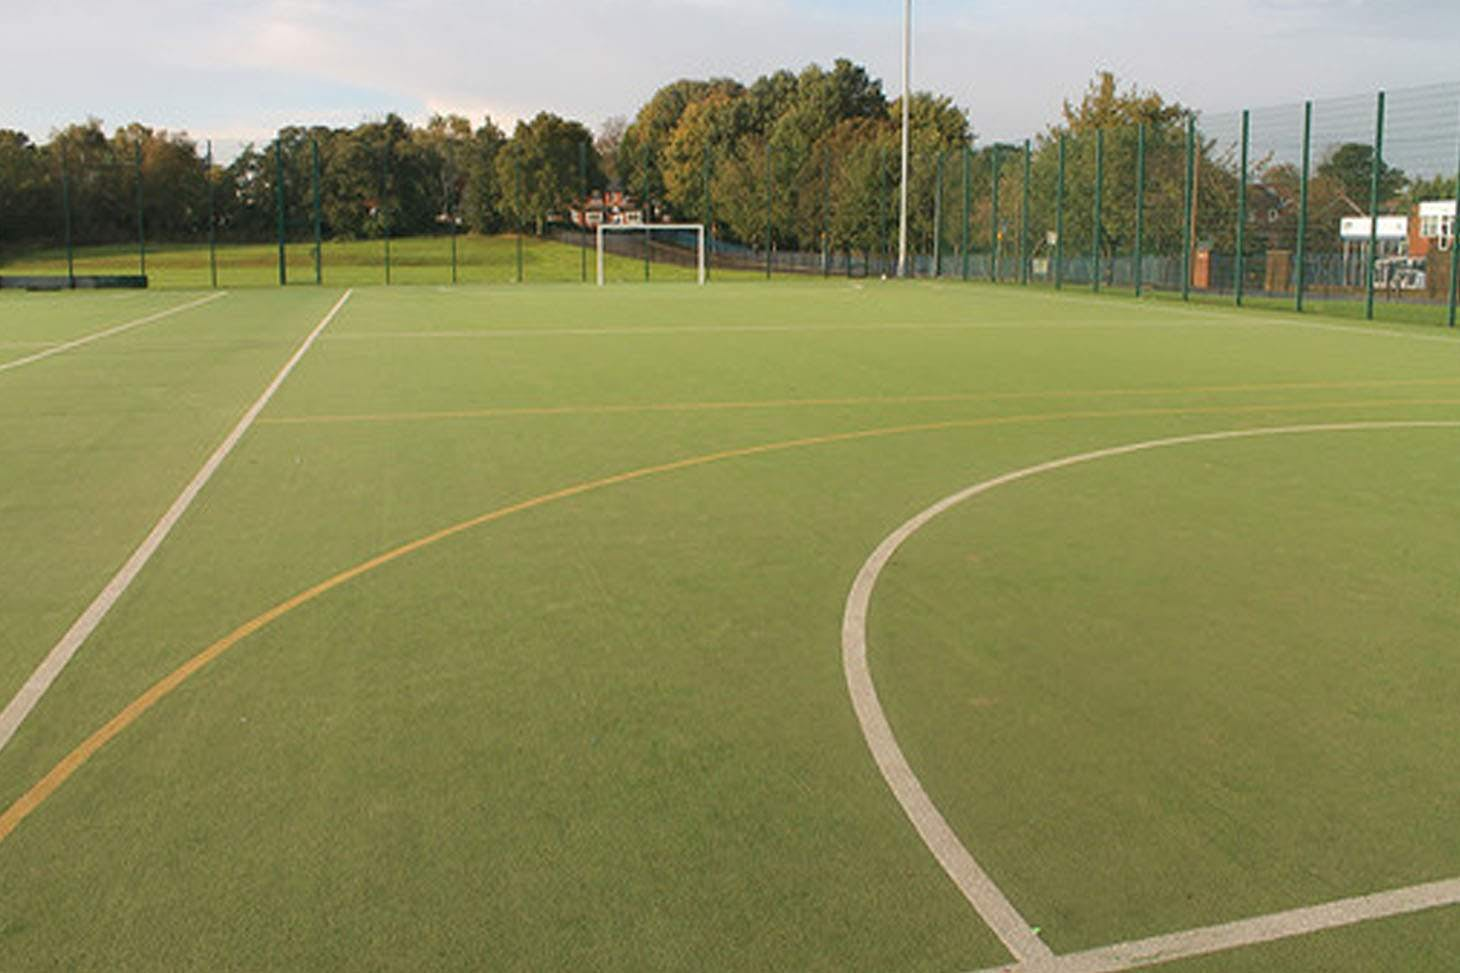 St. James's C of E High School Outdoor | Astroturf hockey pitch